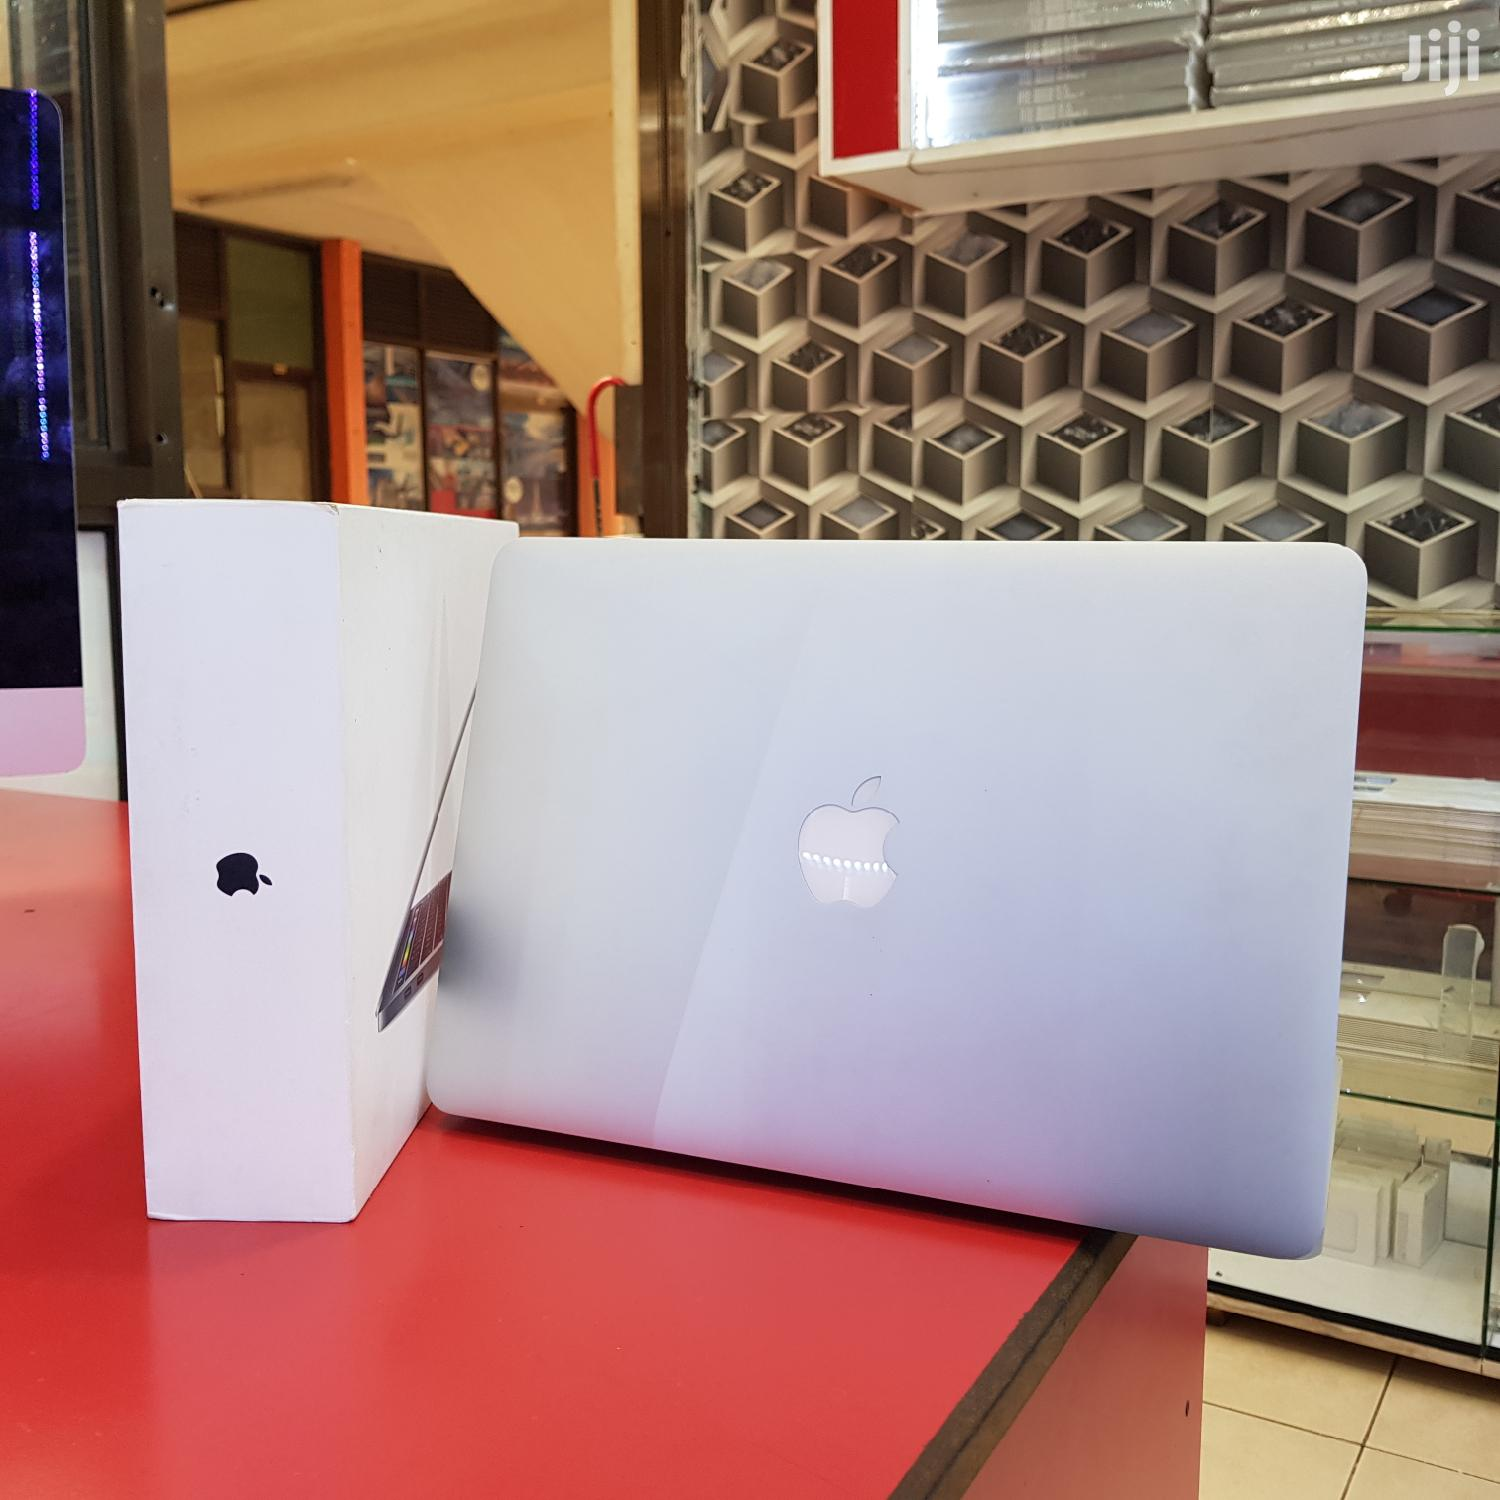 New Apple Macbook Air 13 Inches 128 Gb Ssd Core I5 8 Gb Ram | Laptops & Computers for sale in Kampala, Central Region, Uganda